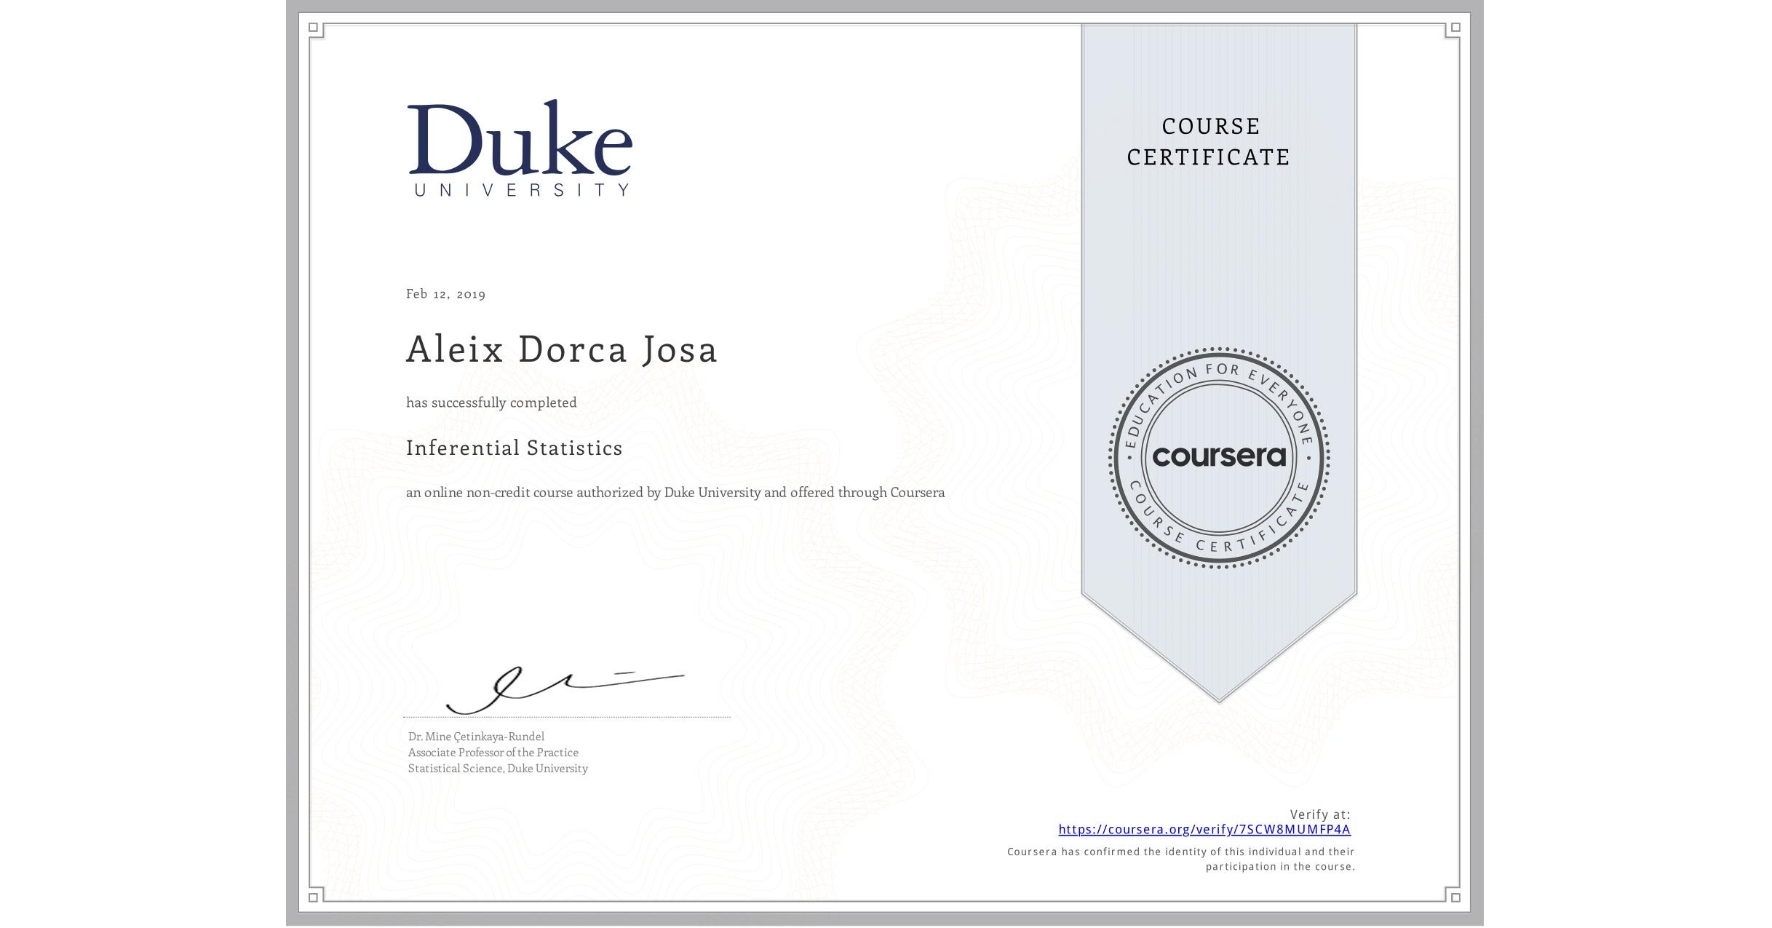 View certificate for Aleix Dorca Josa, Inferential Statistics, an online non-credit course authorized by Duke University and offered through Coursera